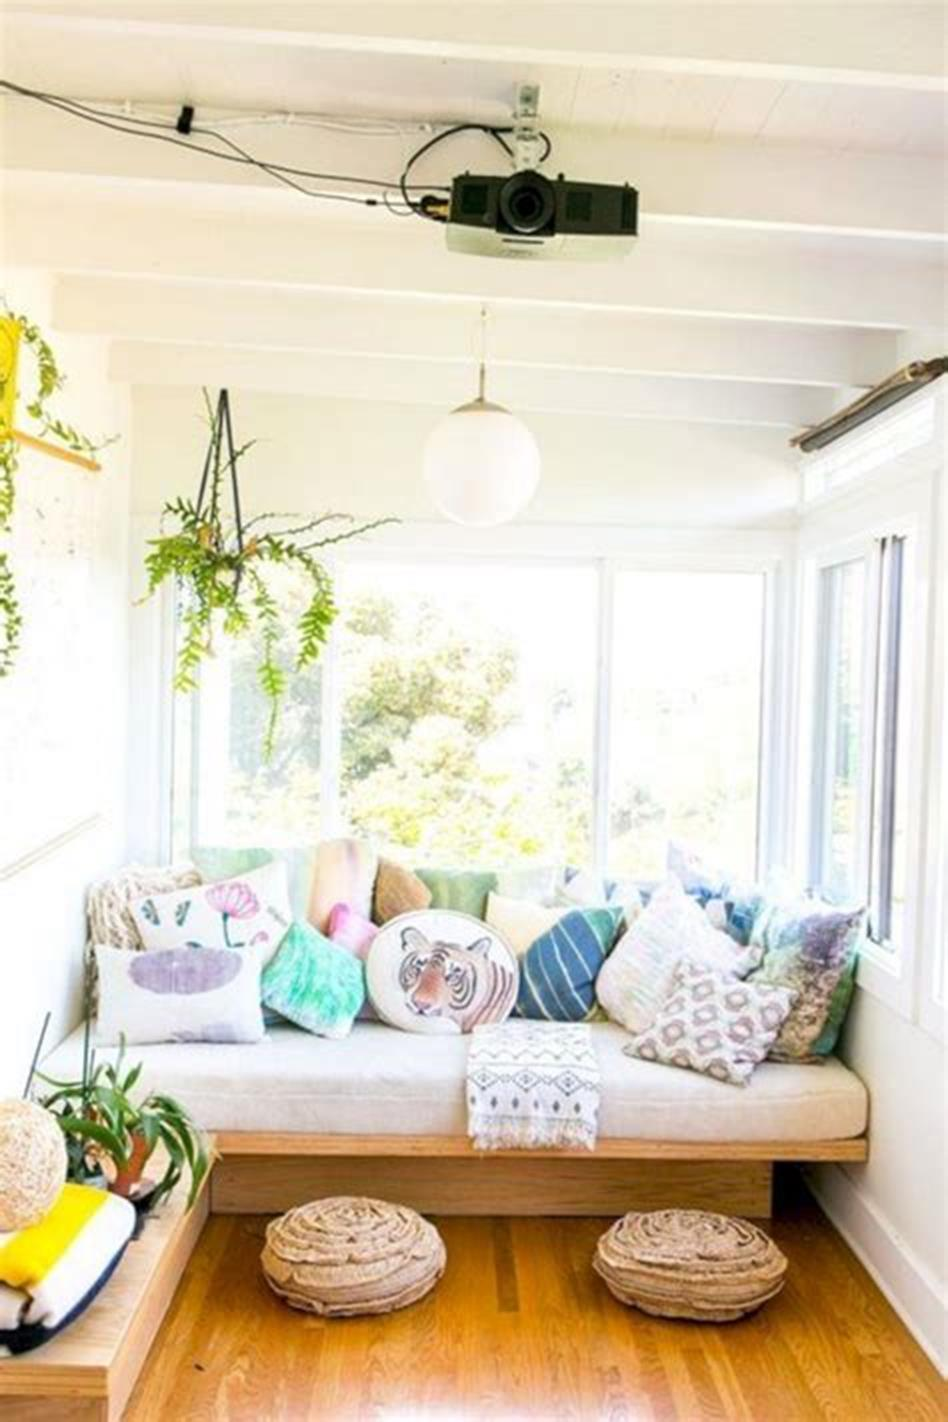 50 Most Popular Affordable Sunroom Design Ideas on a Budget 50